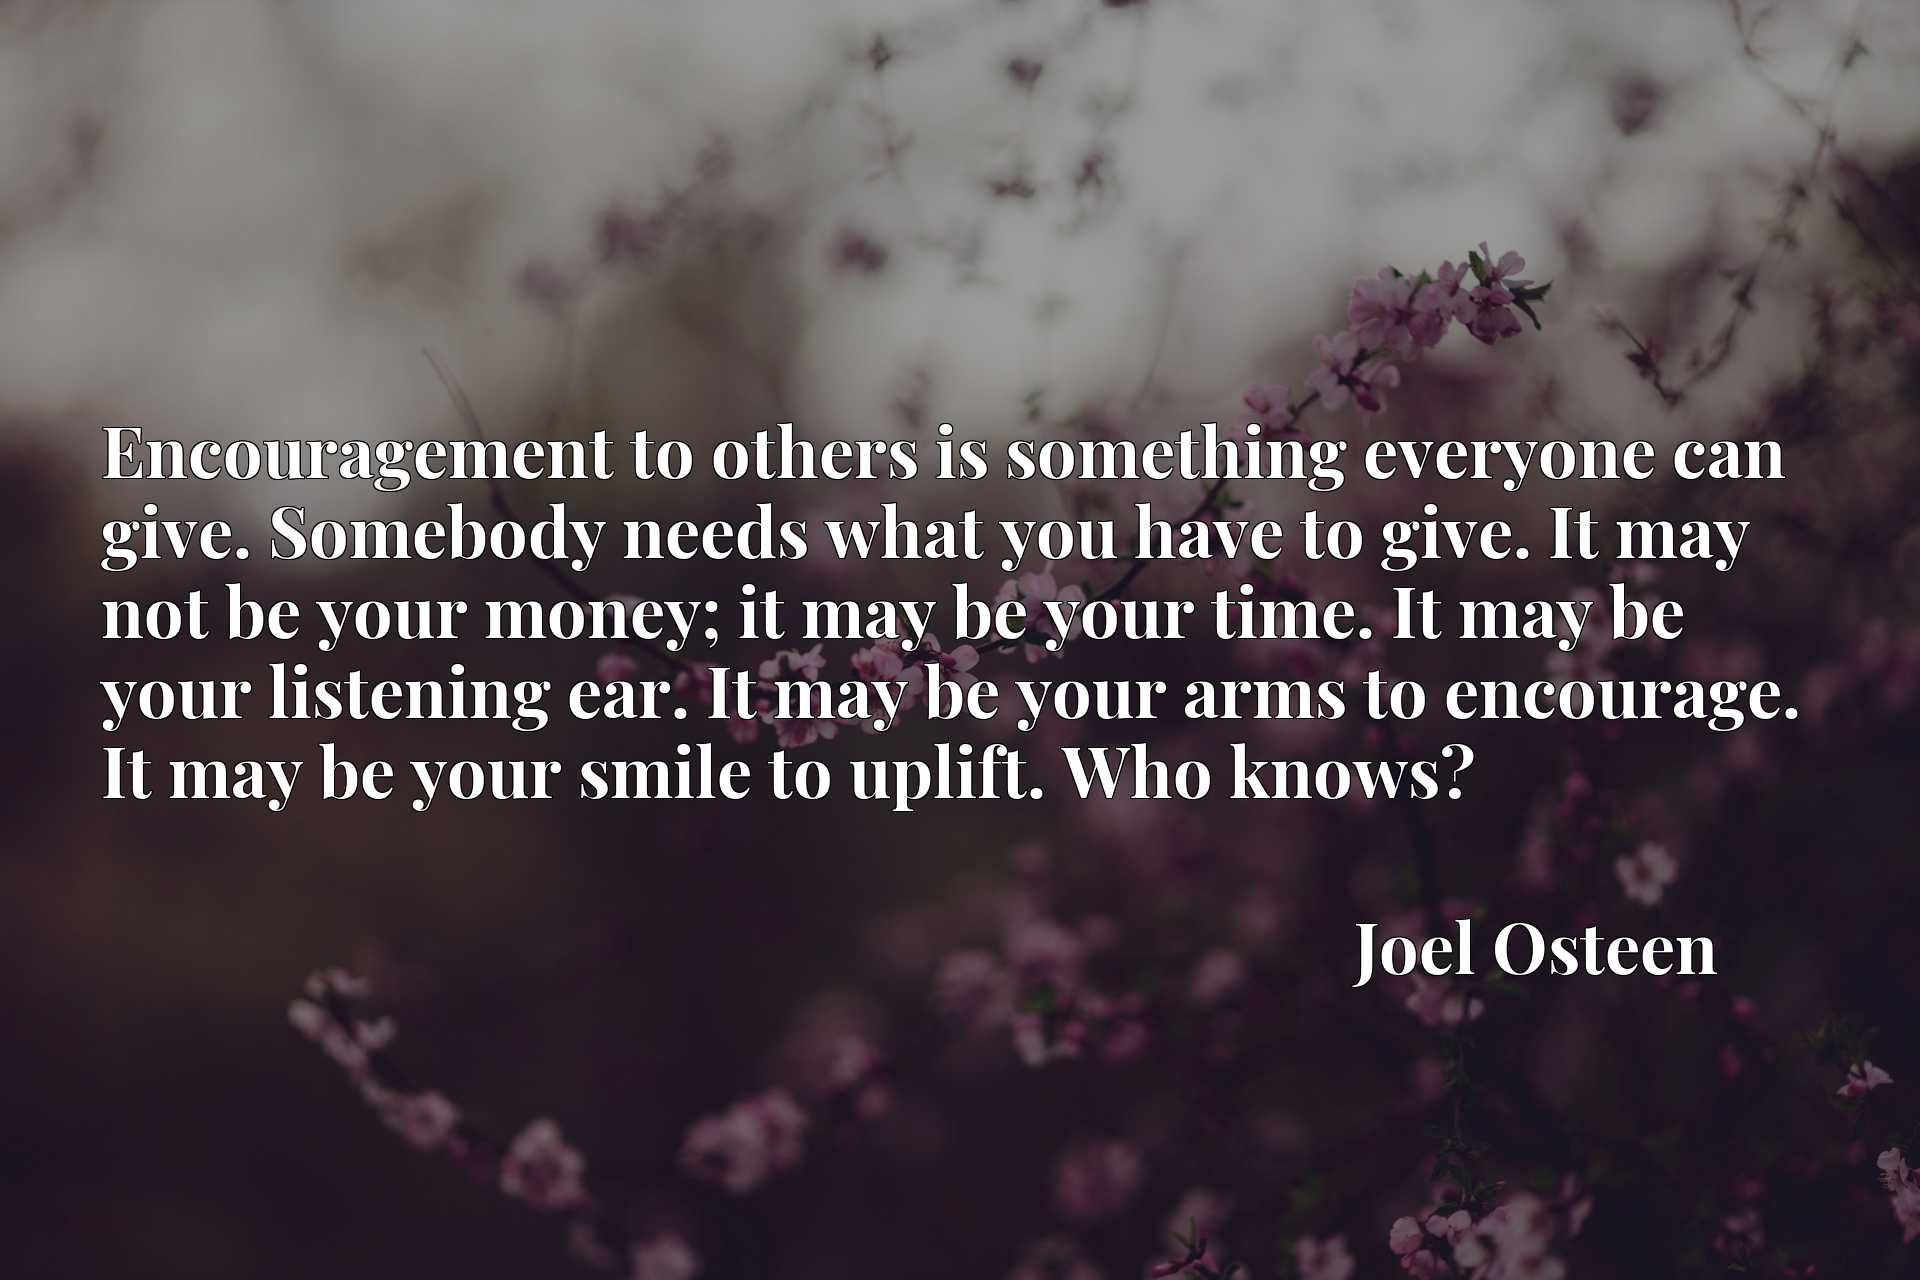 Encouragement to others is something everyone can give. Somebody needs what you have to give. It may not be your money; it may be your time. It may be your listening ear. It may be your arms to encourage. It may be your smile to uplift. Who knows?